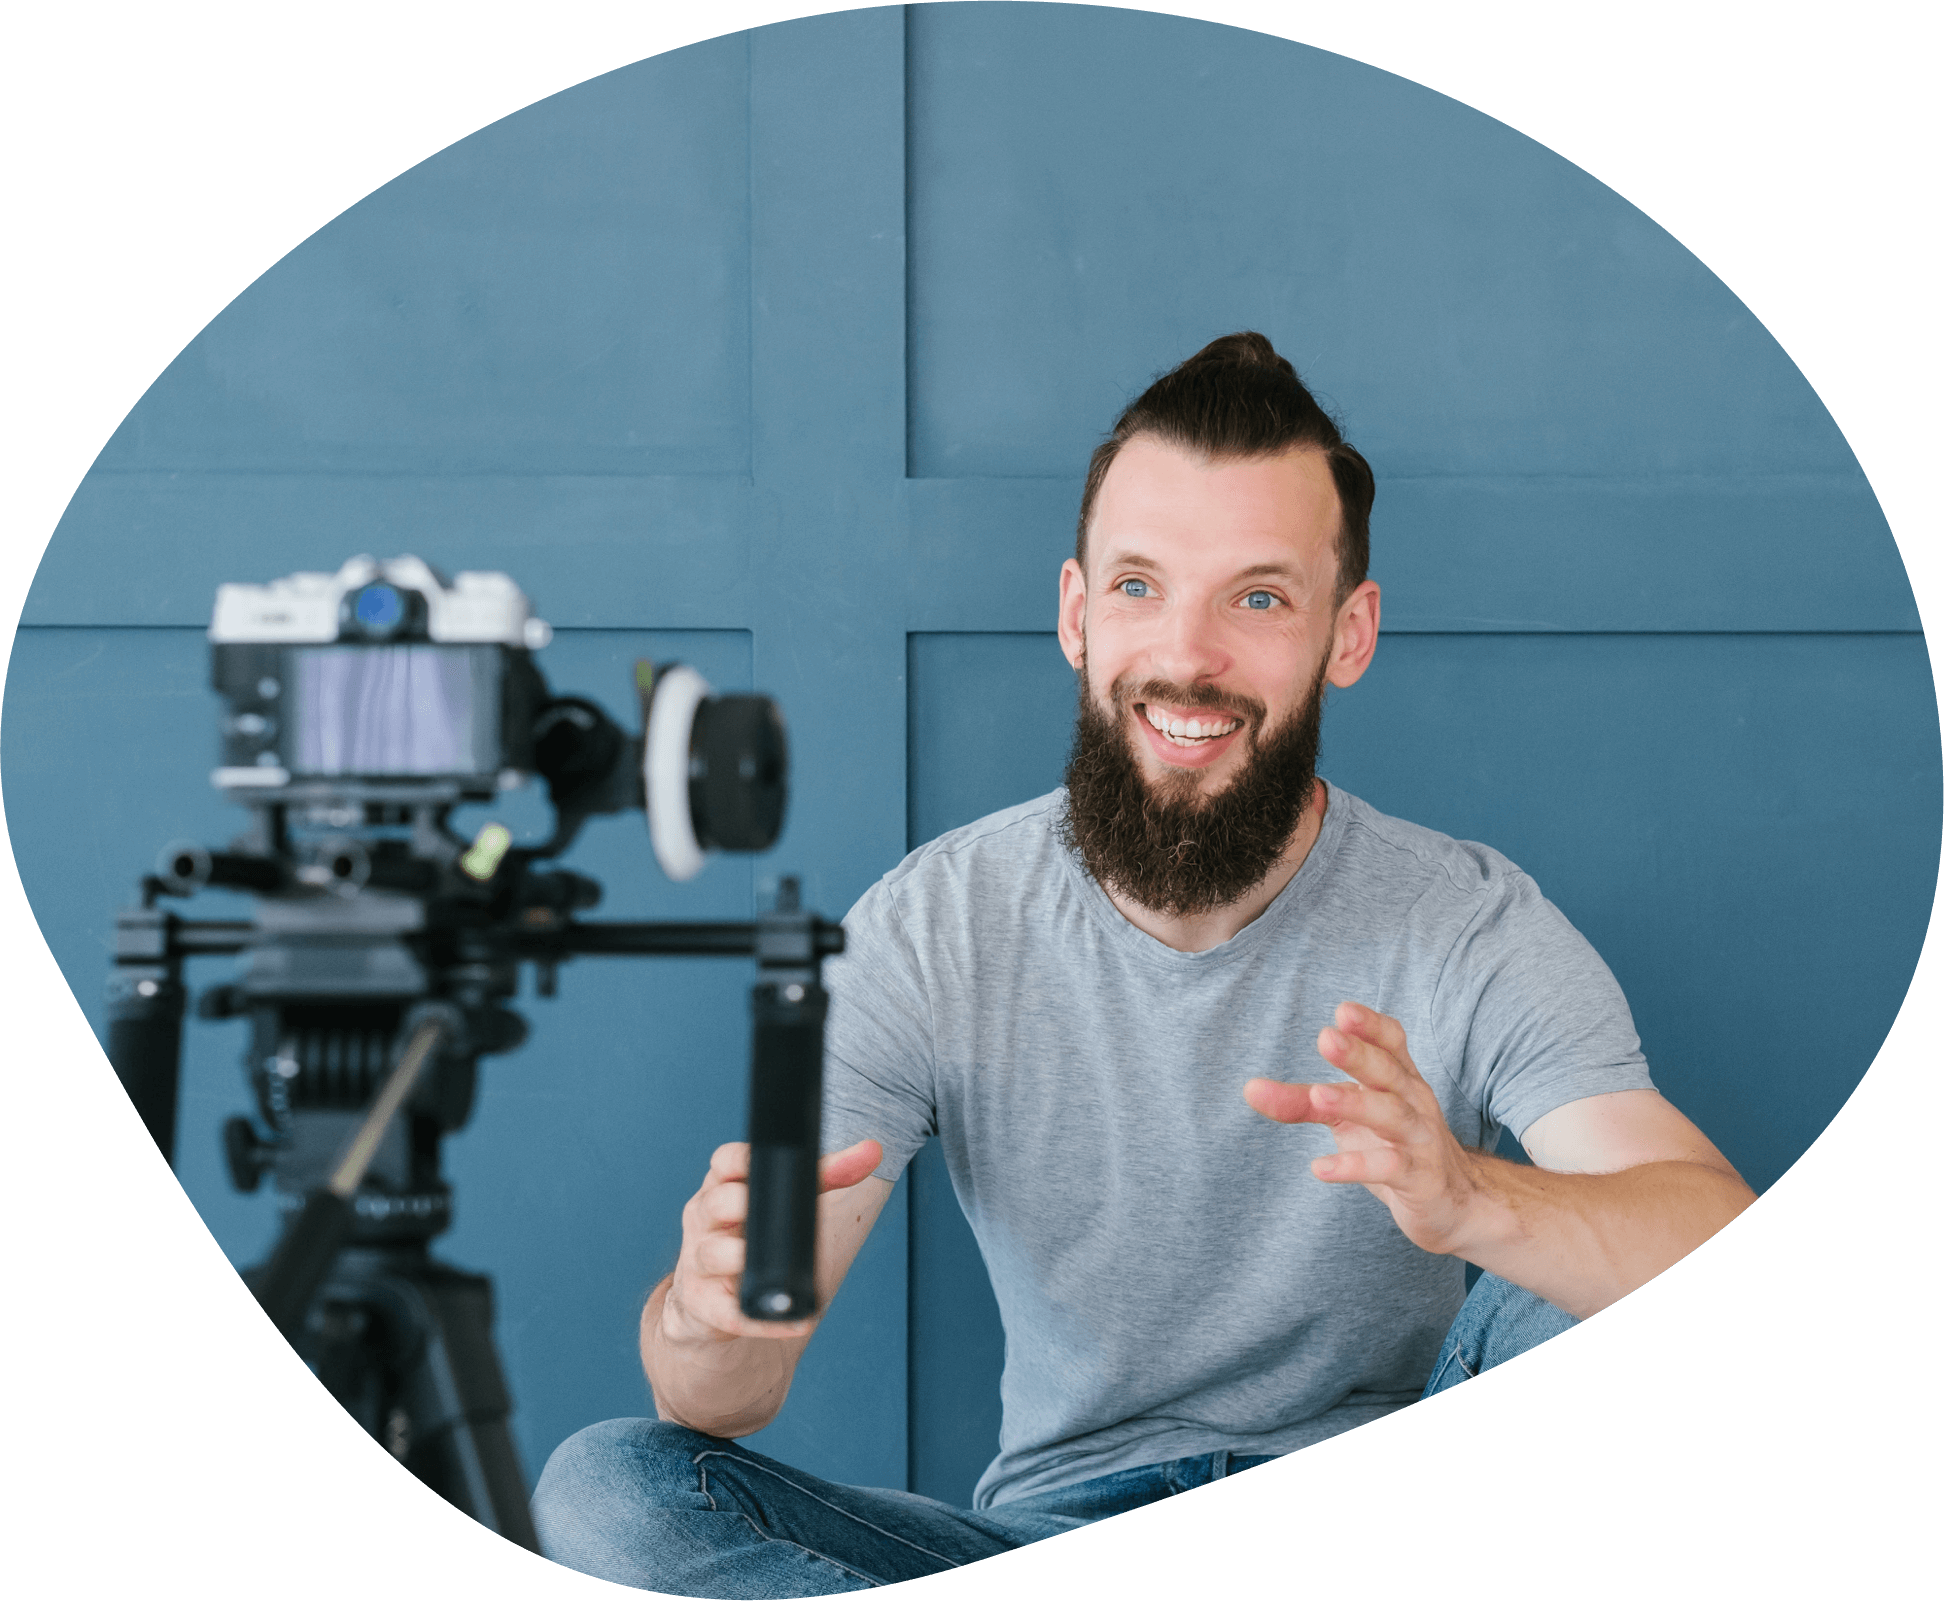 man using video camera on blue background